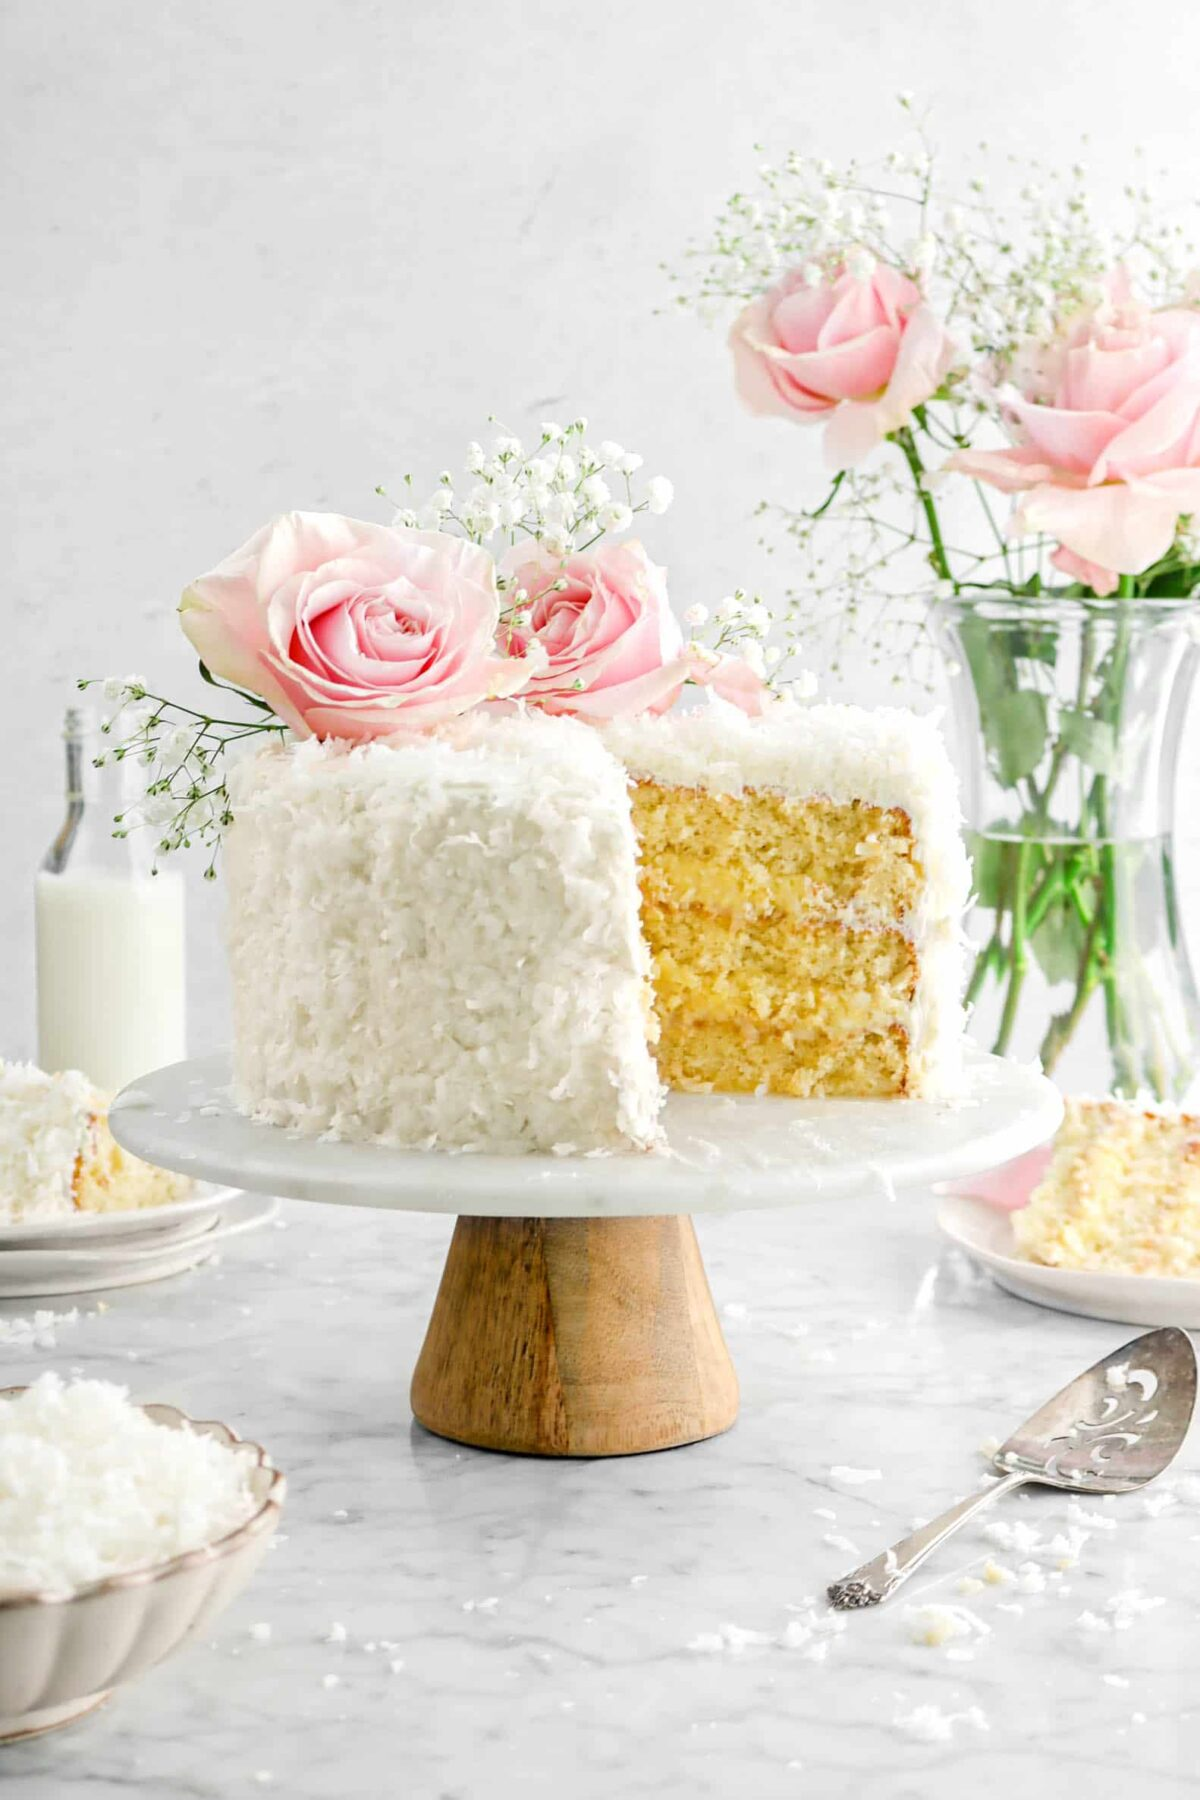 coconut cake with two slices behind, roses on top, and a bowl of coconut shreds